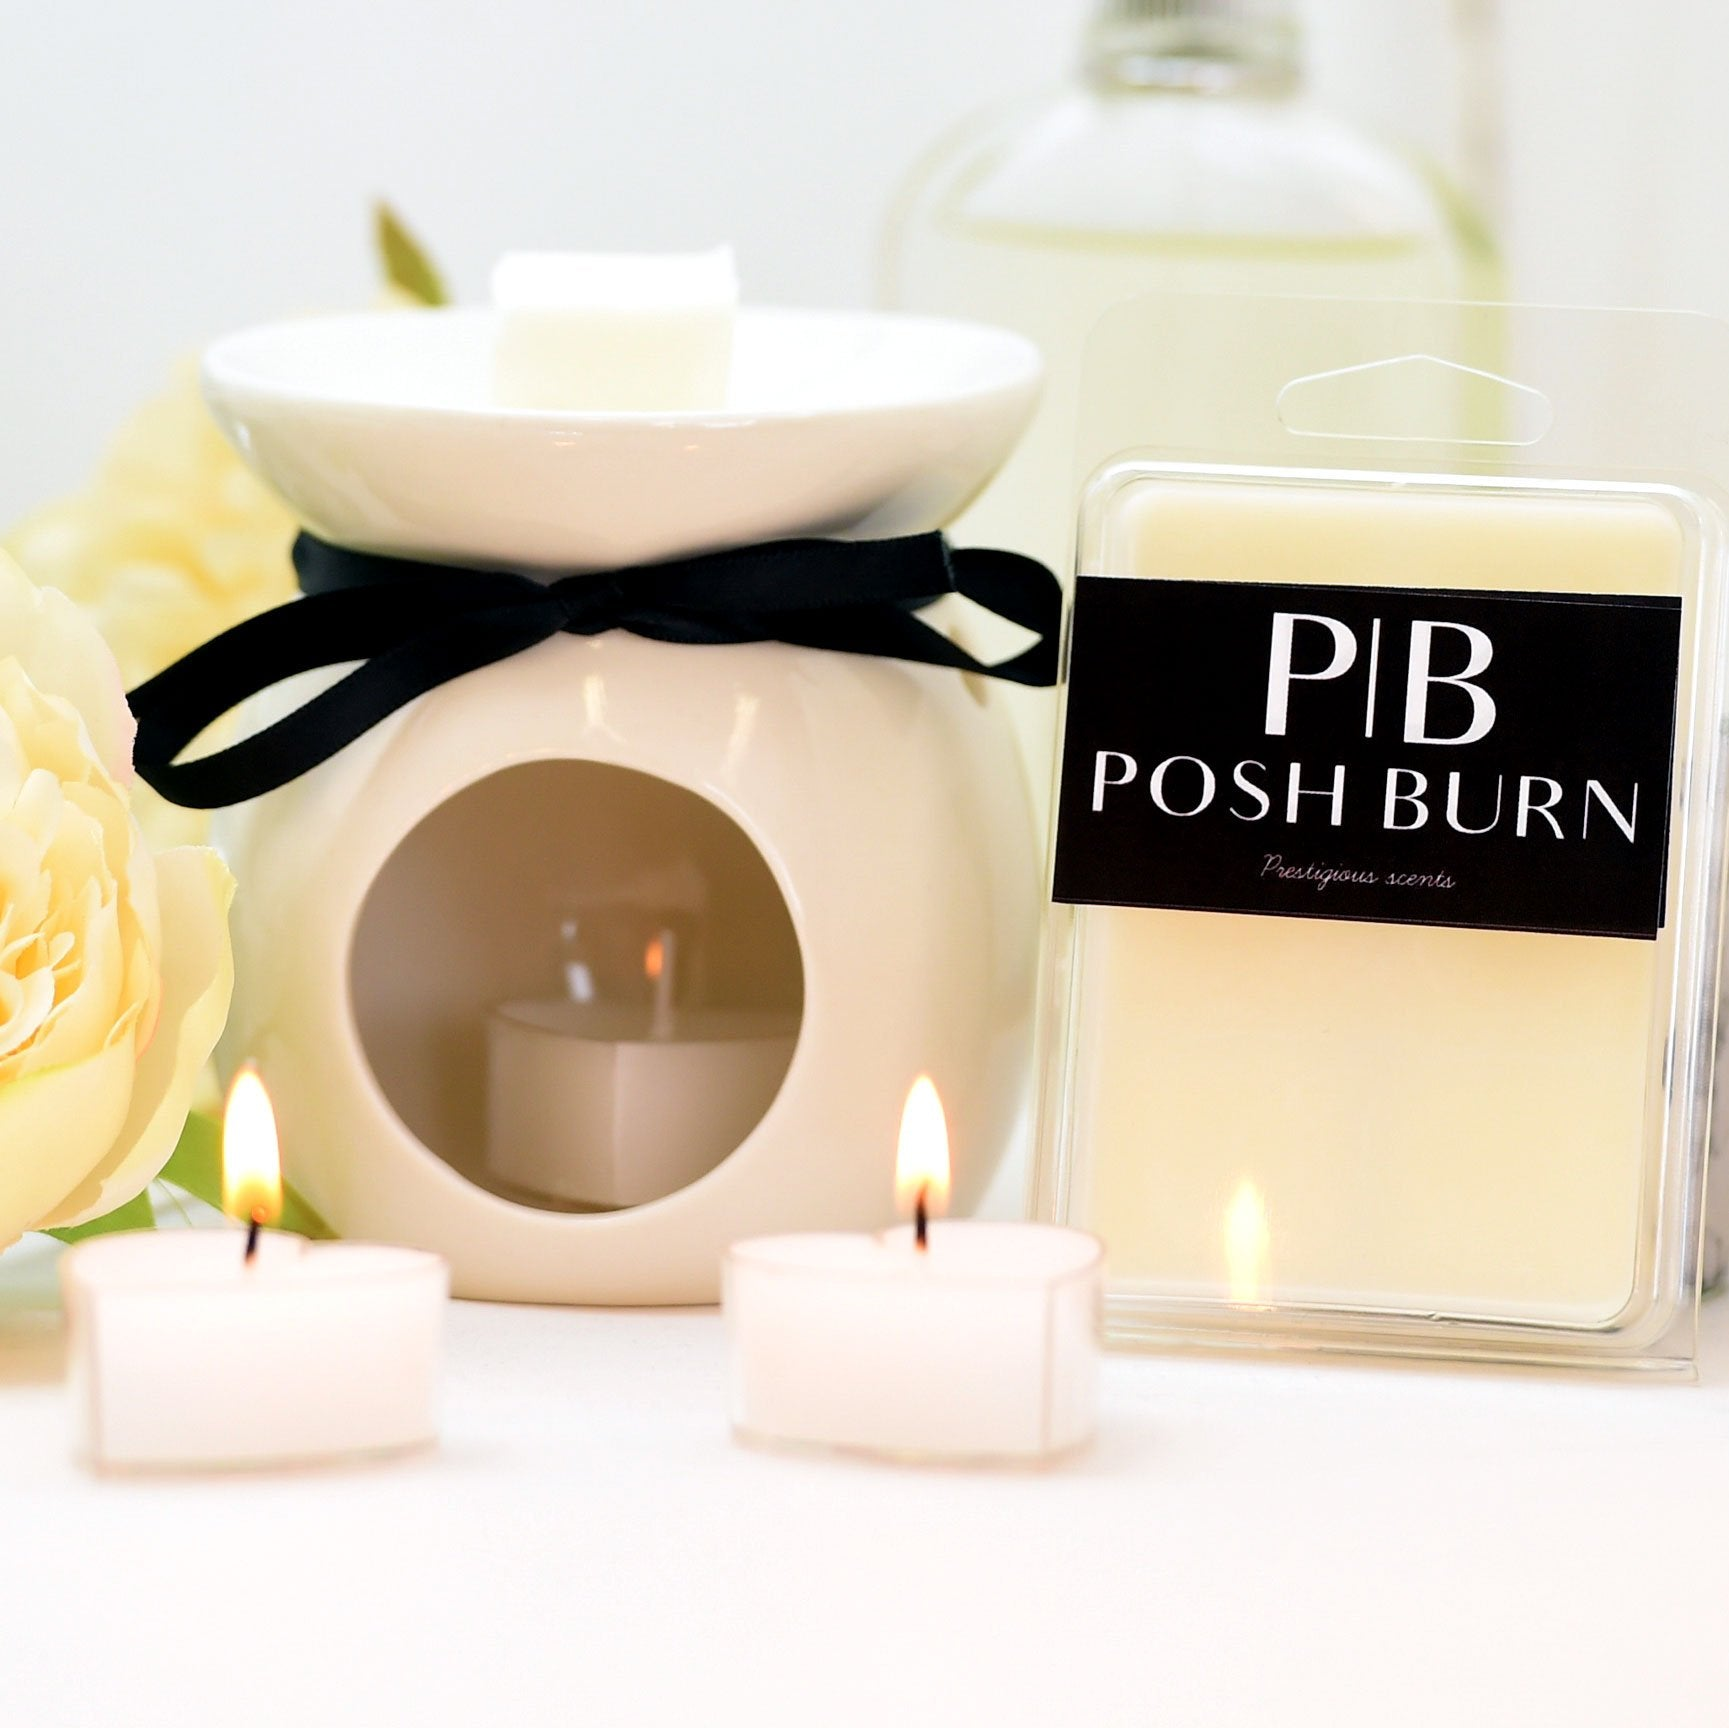 Ceramic waxmelt burner, shown with a packet of wax melts and Two candles